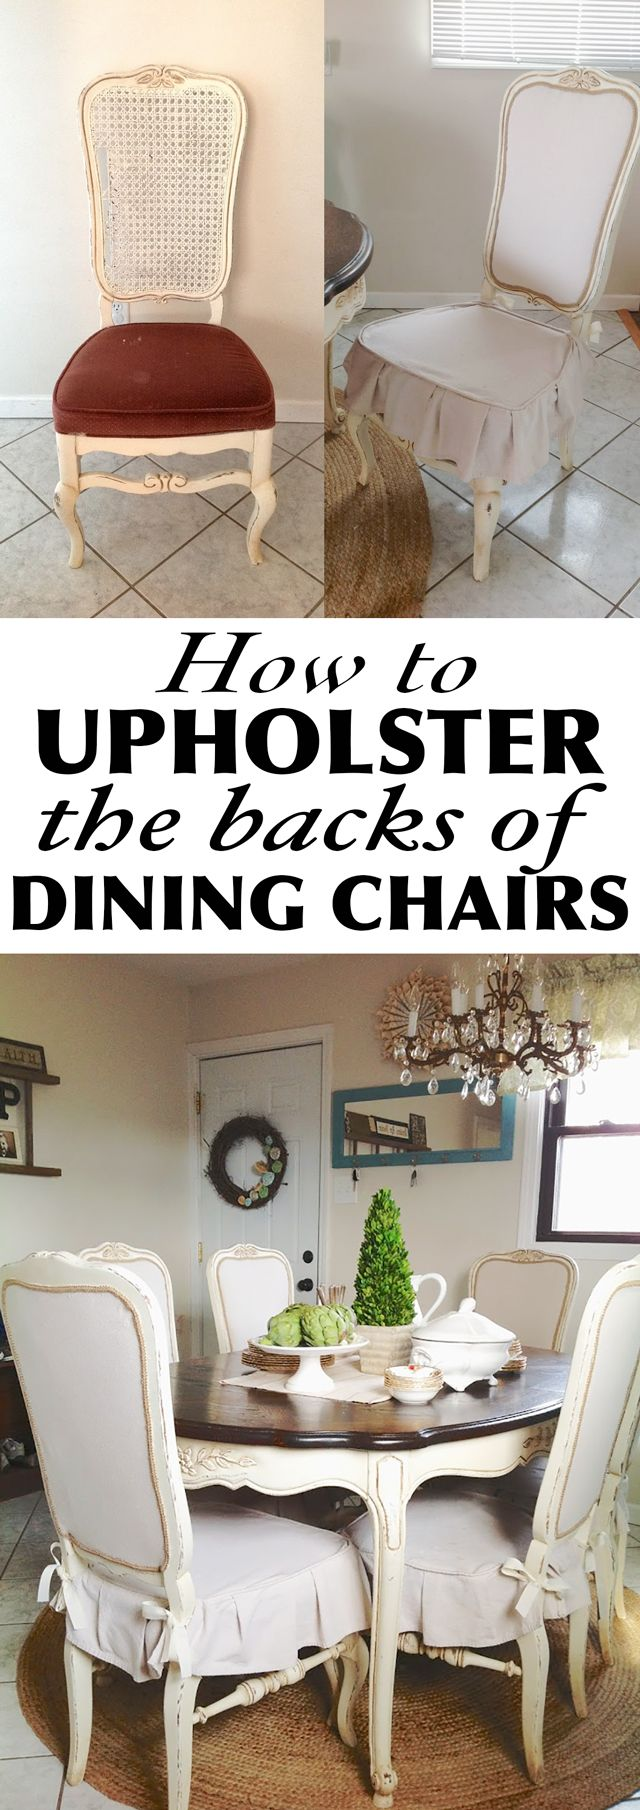 Living Room Chairs For Bad Backs 17 Best Ideas About Cane Chairs On Pinterest Chair Reupholstery